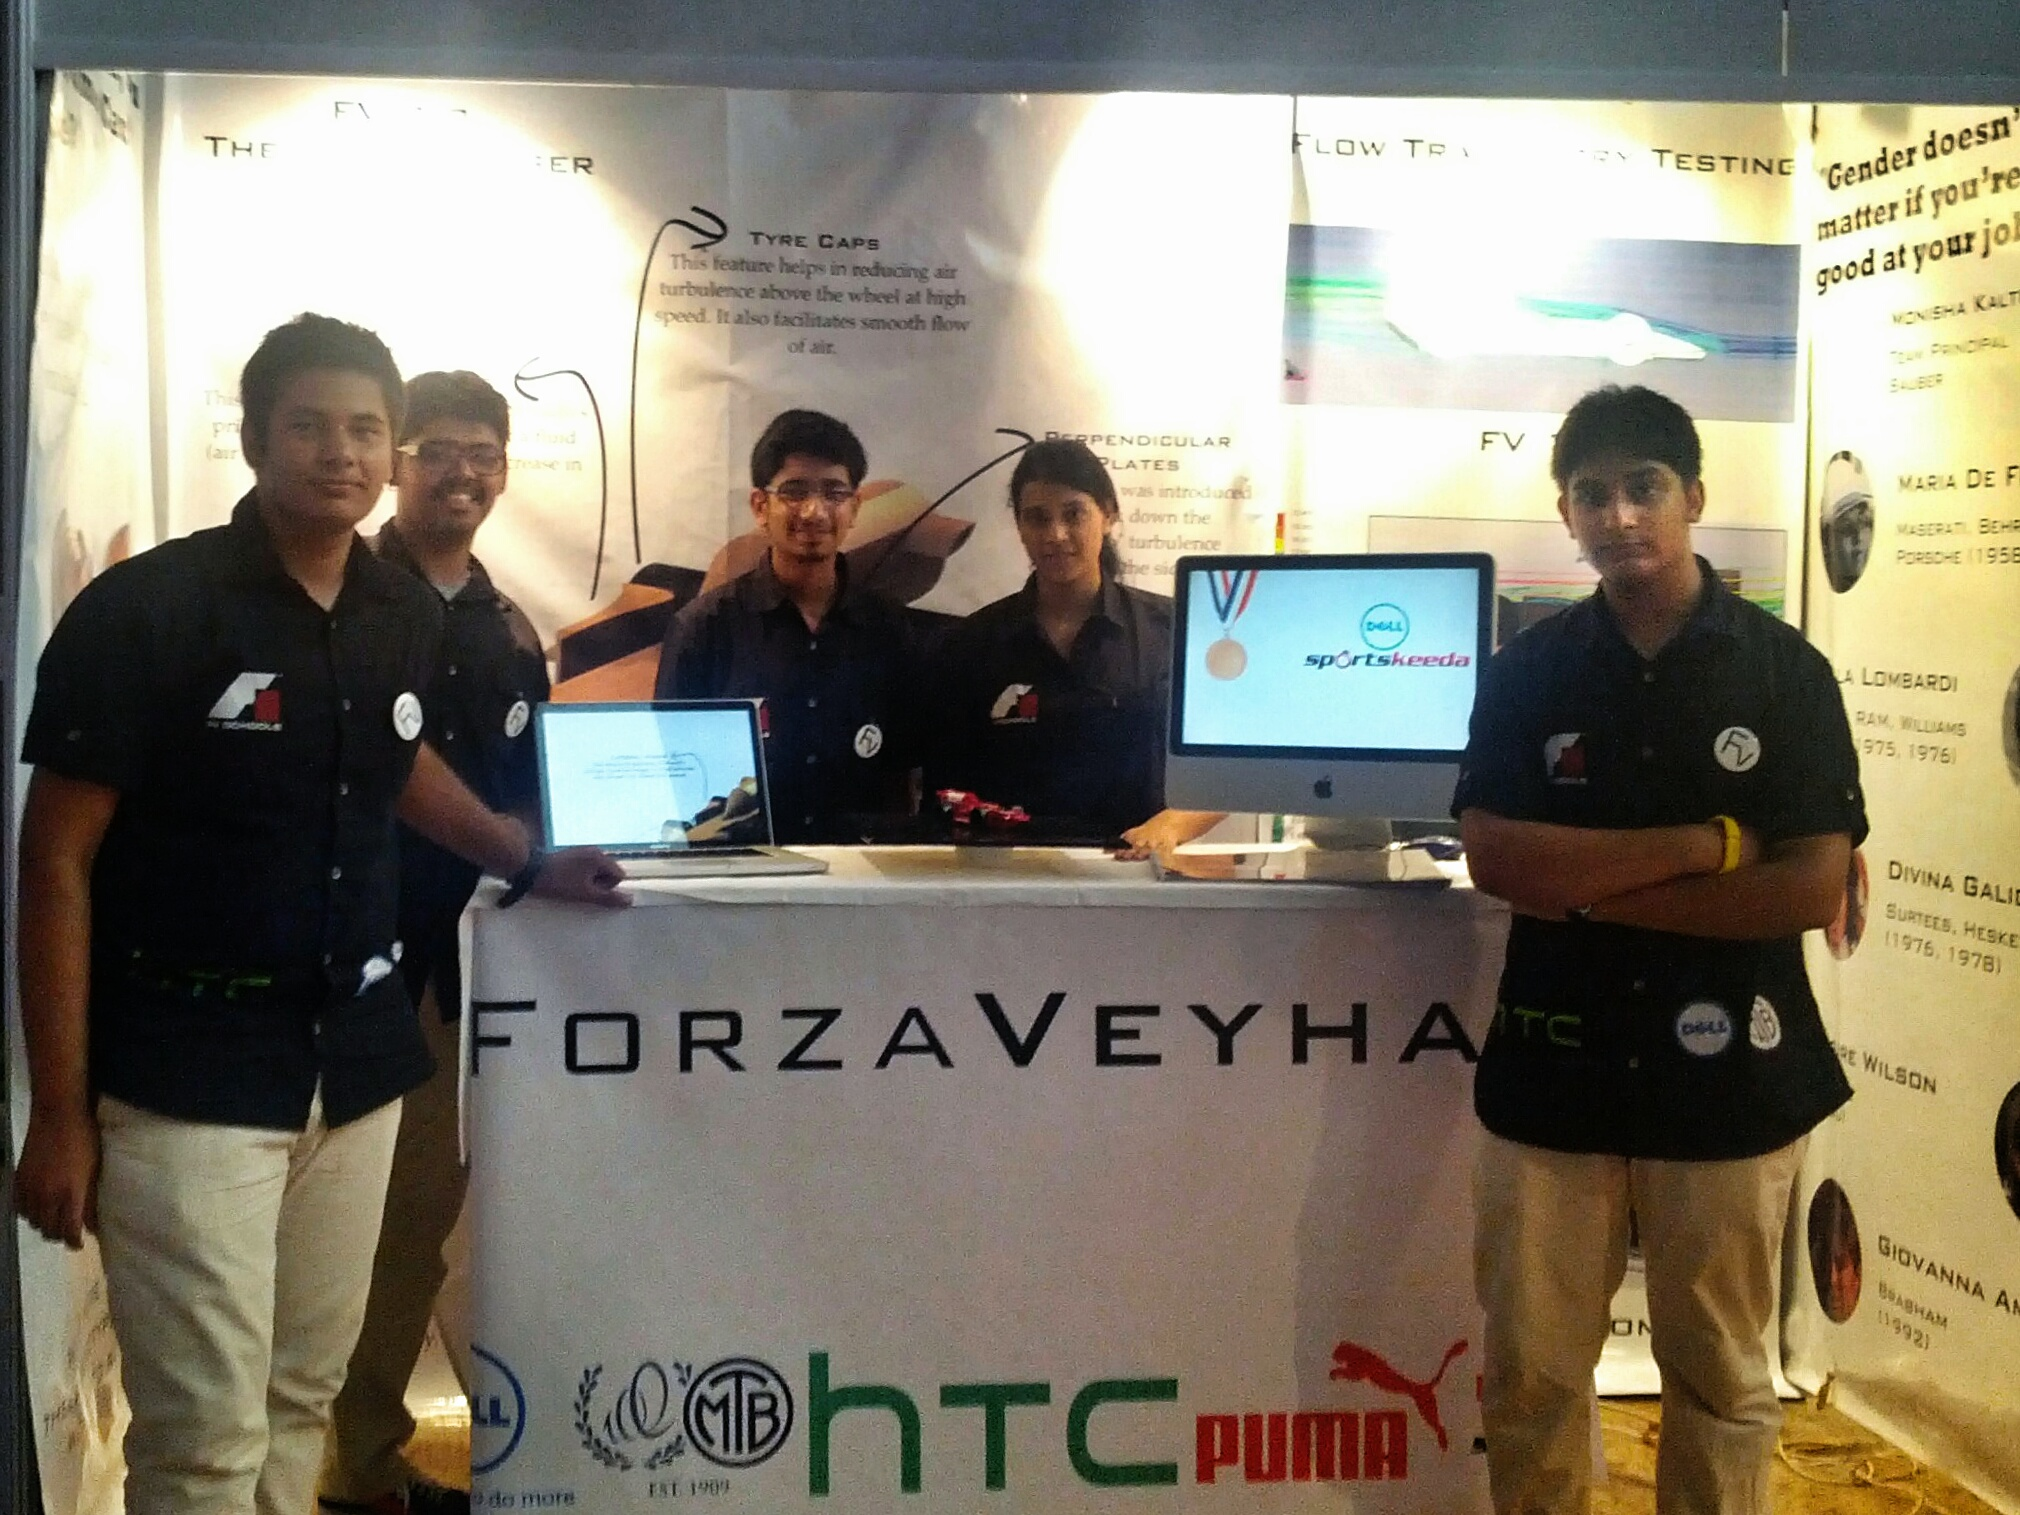 ForzaVeyhan Pitbooth